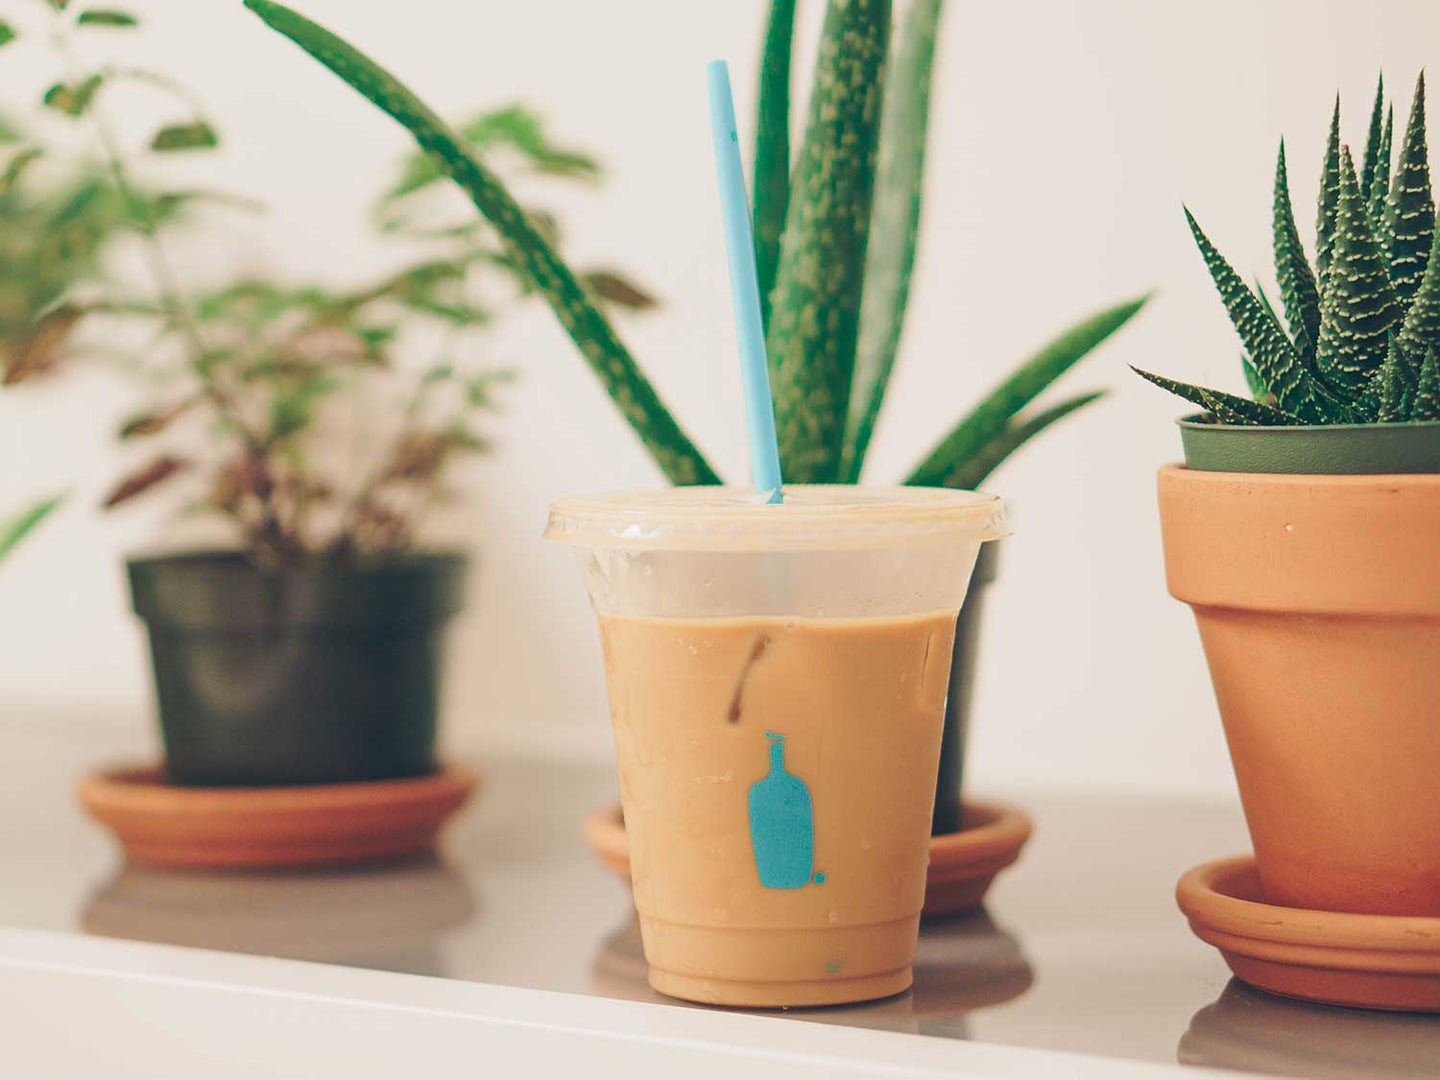 Iced coffee on counter with plants.